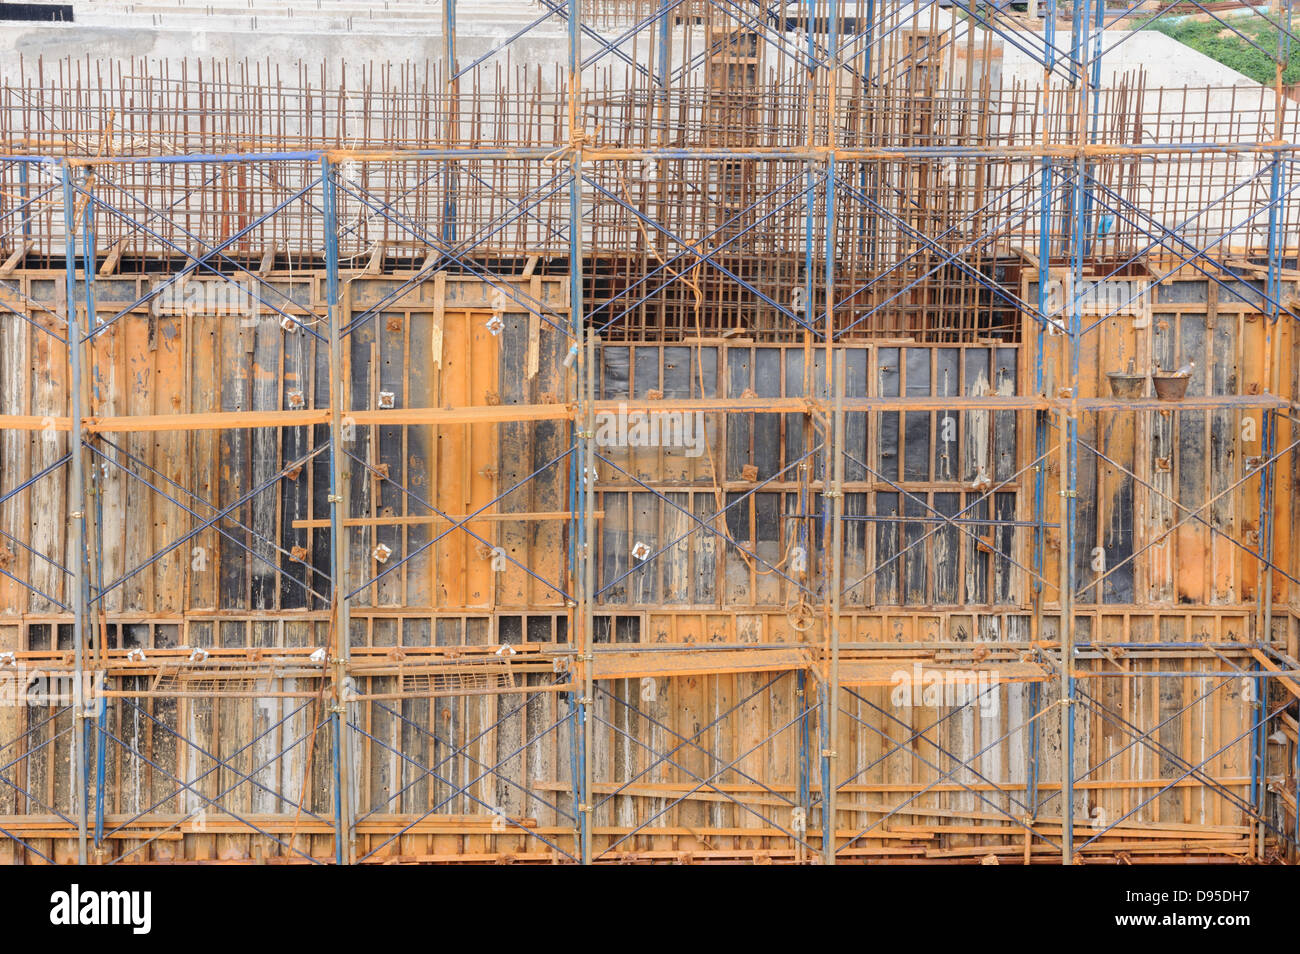 View of a metal scaffolding by work on dam construction site, Thailand. - Stock Image